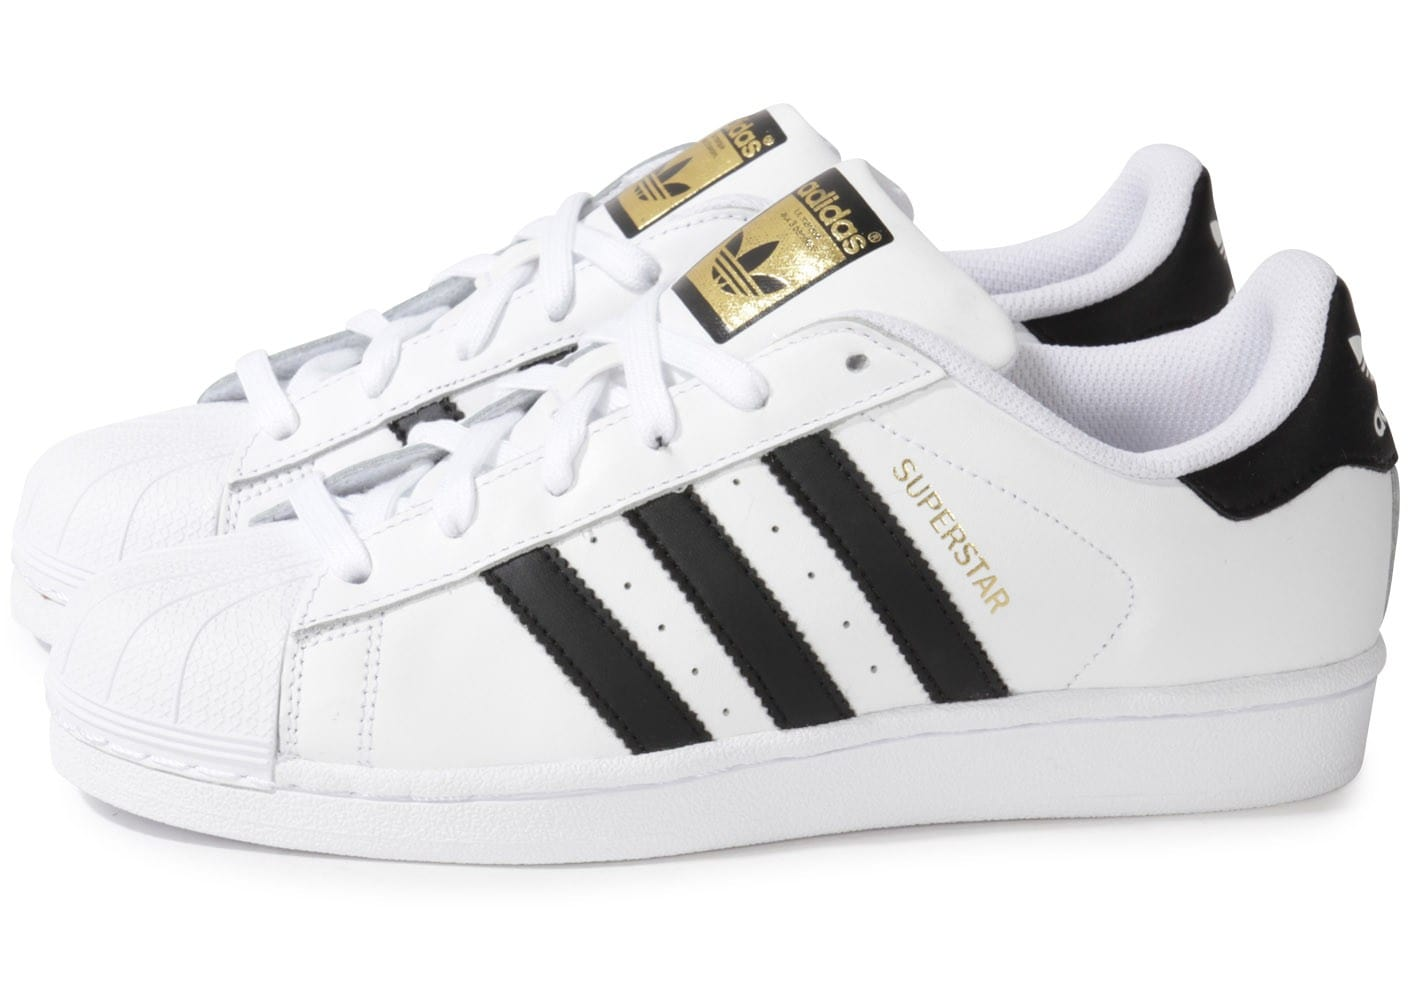 adidas Superstar Foundation blanc noir - Chaussures Basket ...